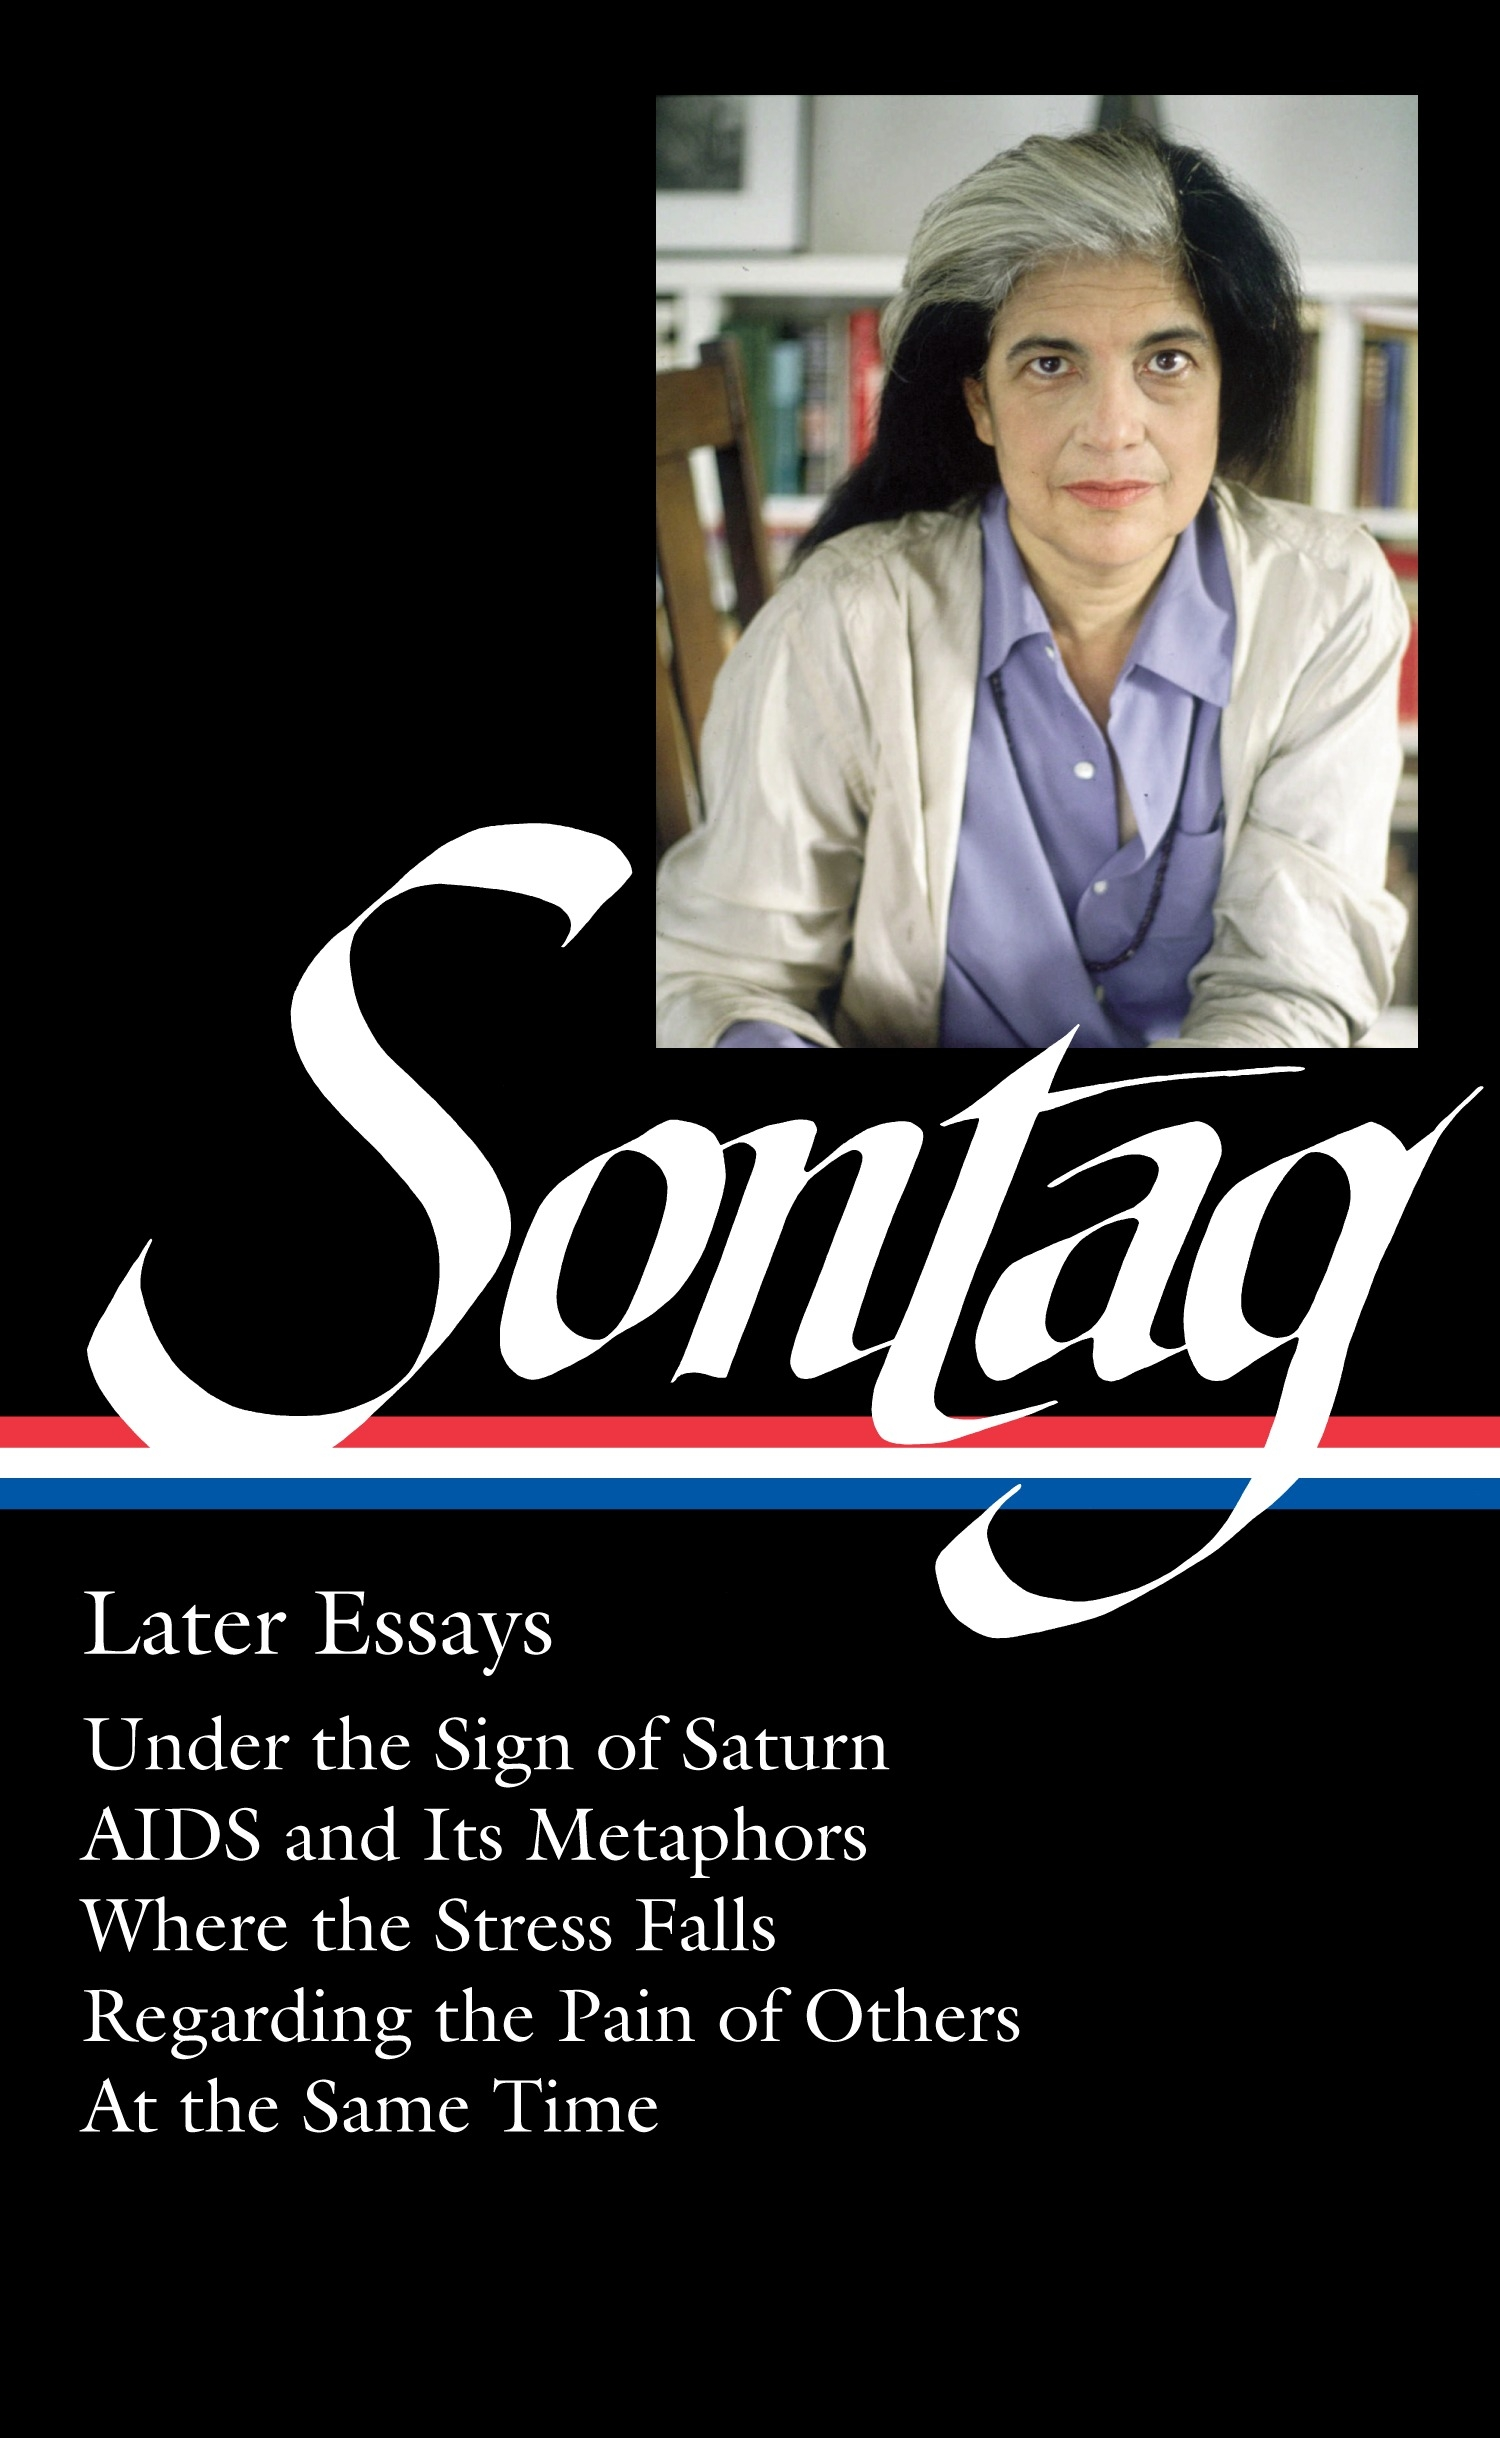 Susan sontag later essays by susan sontag penguin books australia